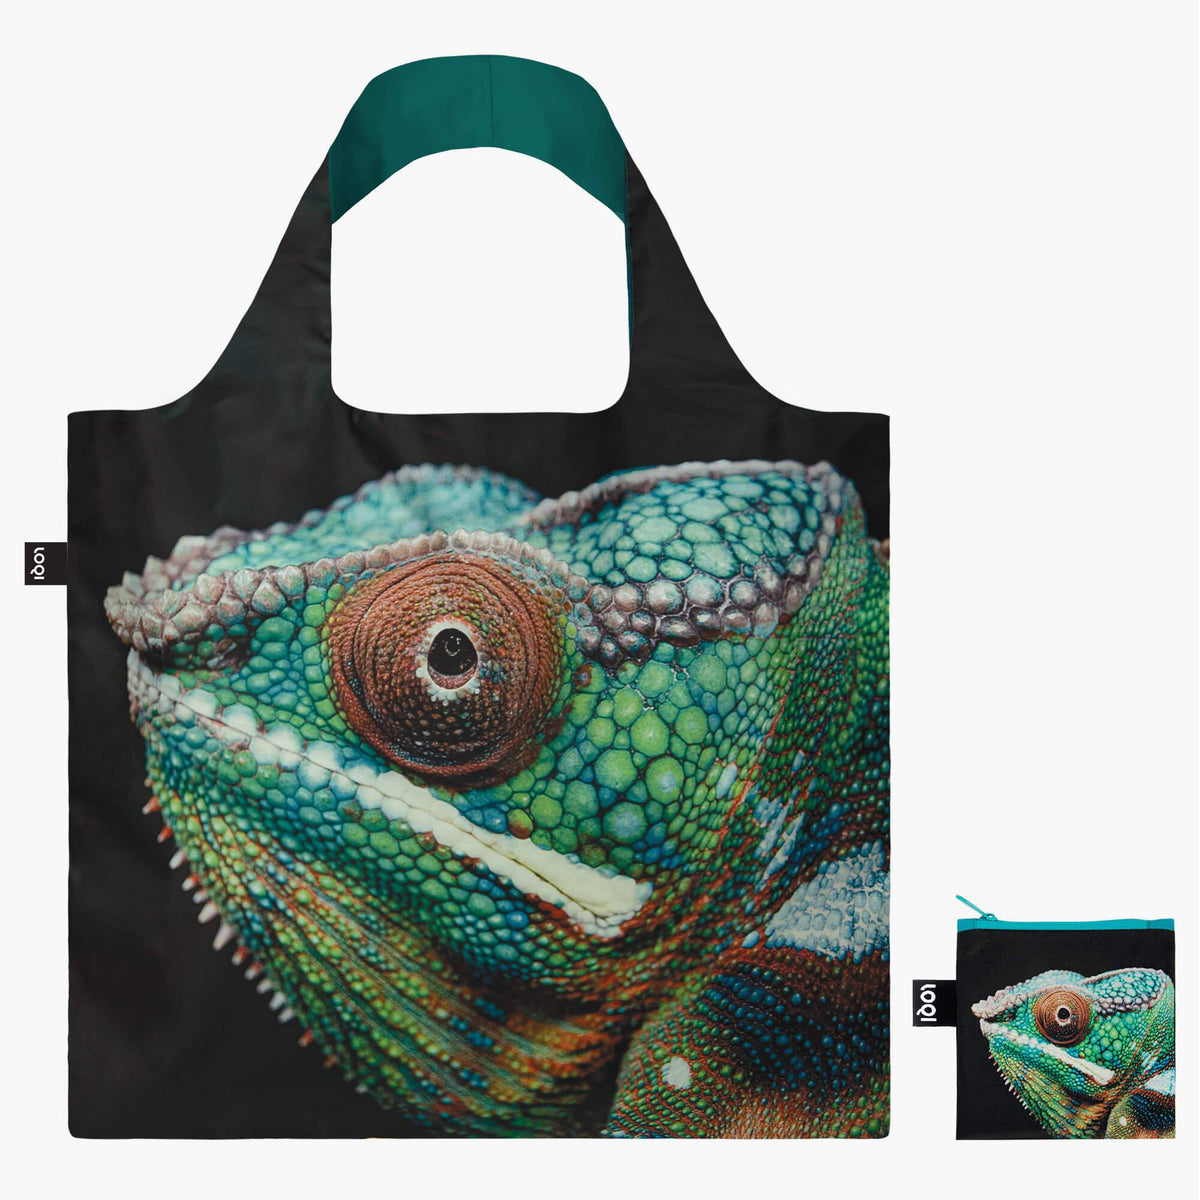 Photo Ark Panther Chameleon Bag